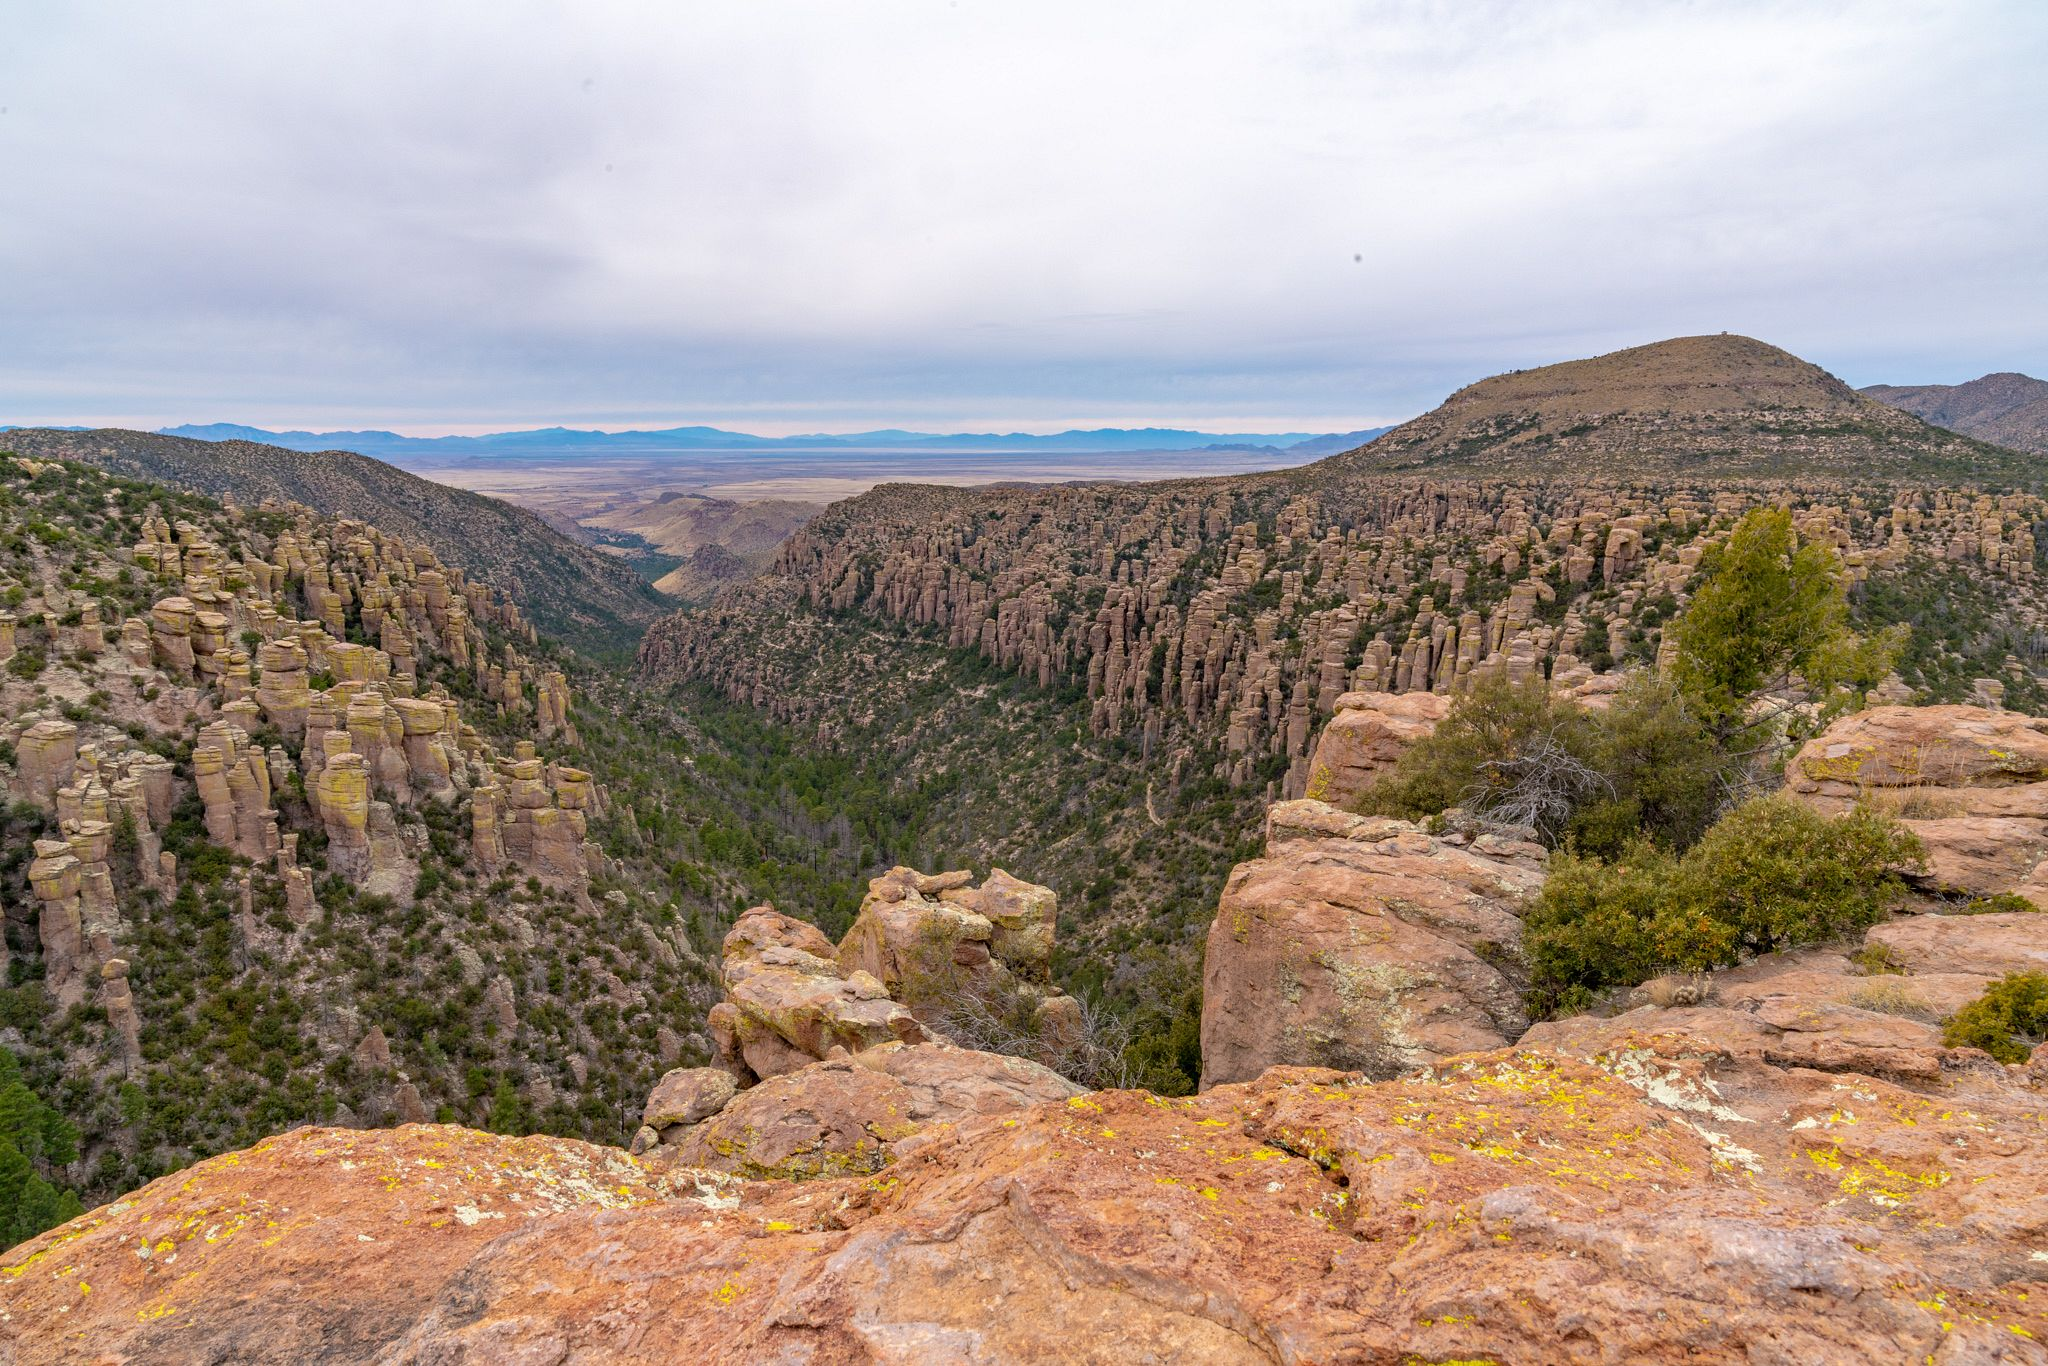 Inspiration Point, Chiricahua National Monument